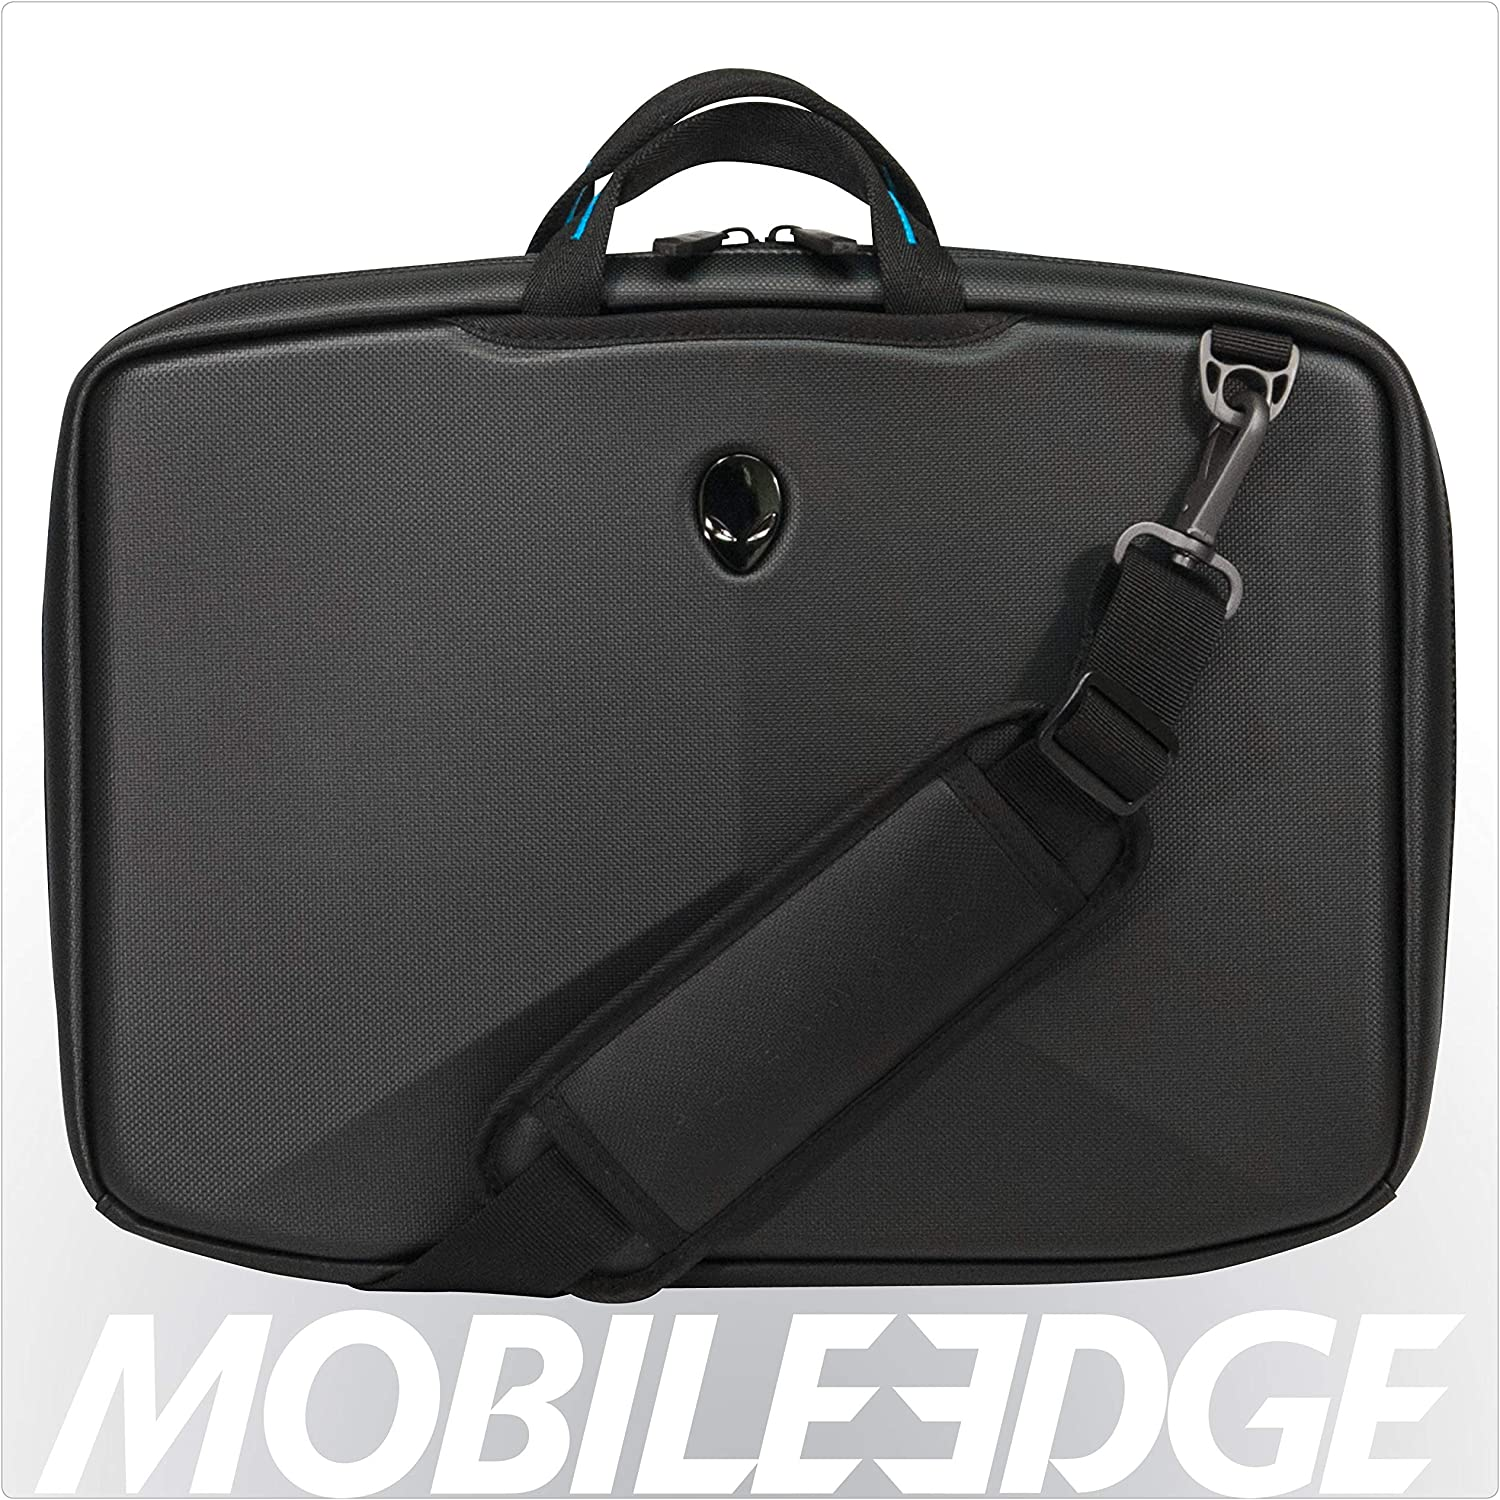 Mobile Edge Alienware Vindicator 2.0 Slim Gaming Laptop Carrying Case, 17-Inch (AWV17SC2.0), Black